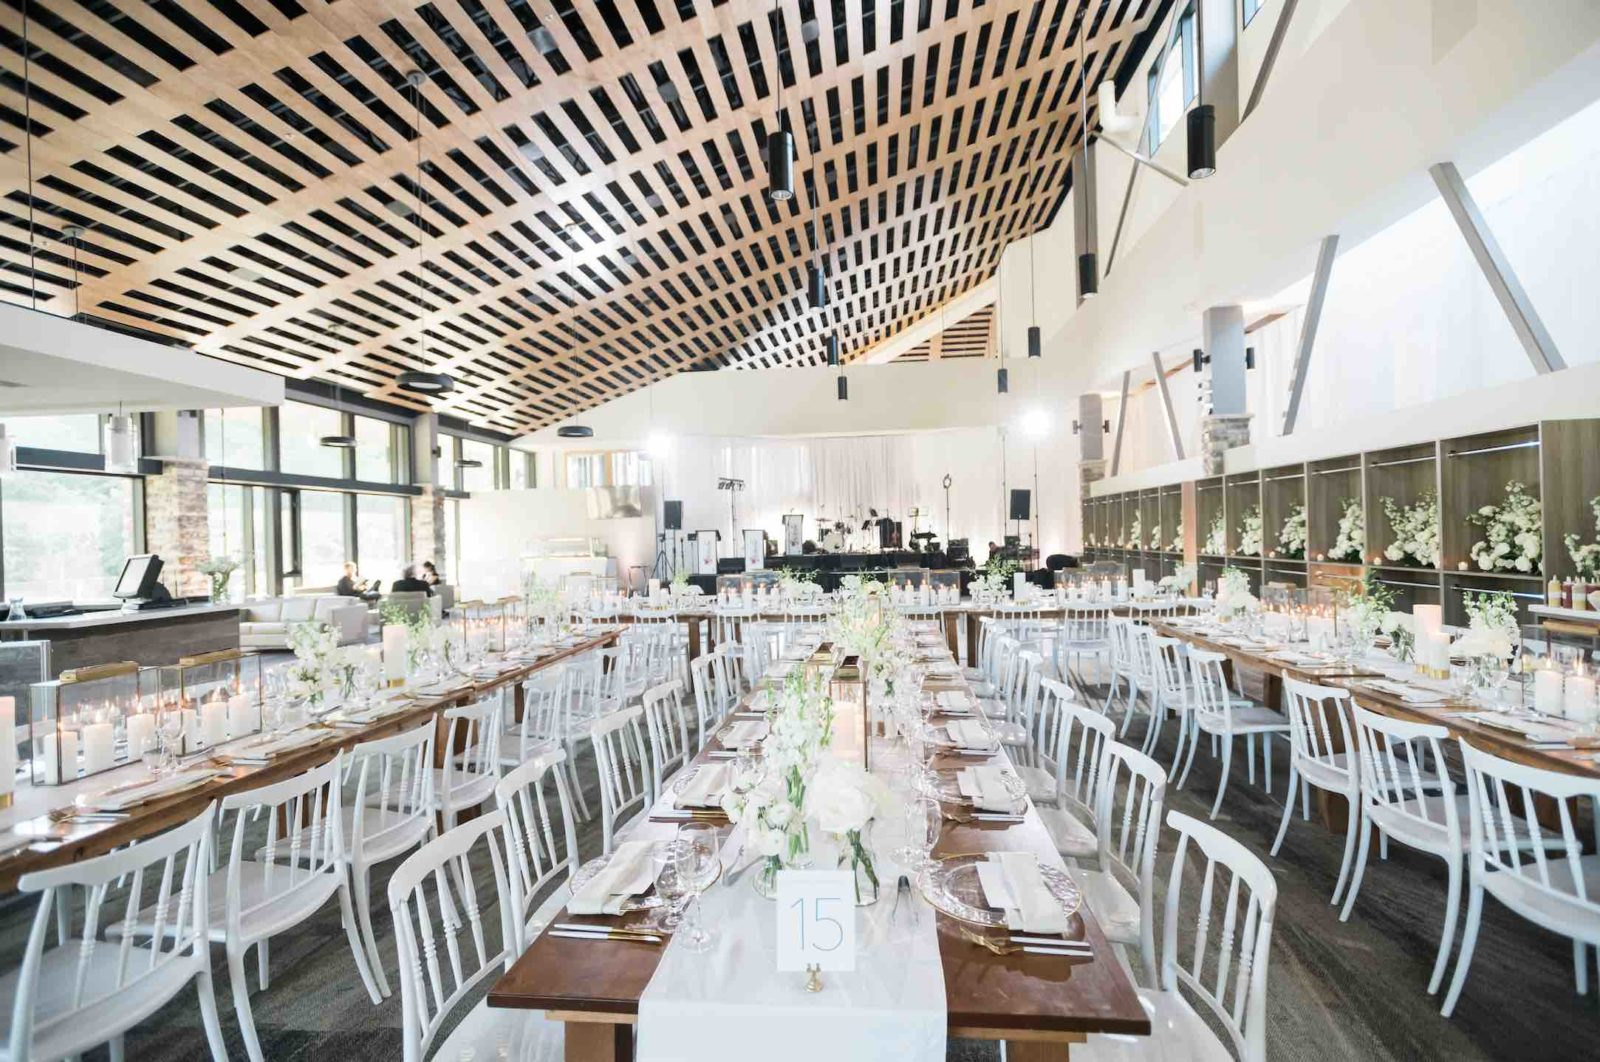 Alpine Ski Club food being set up in event space set up for Wedding